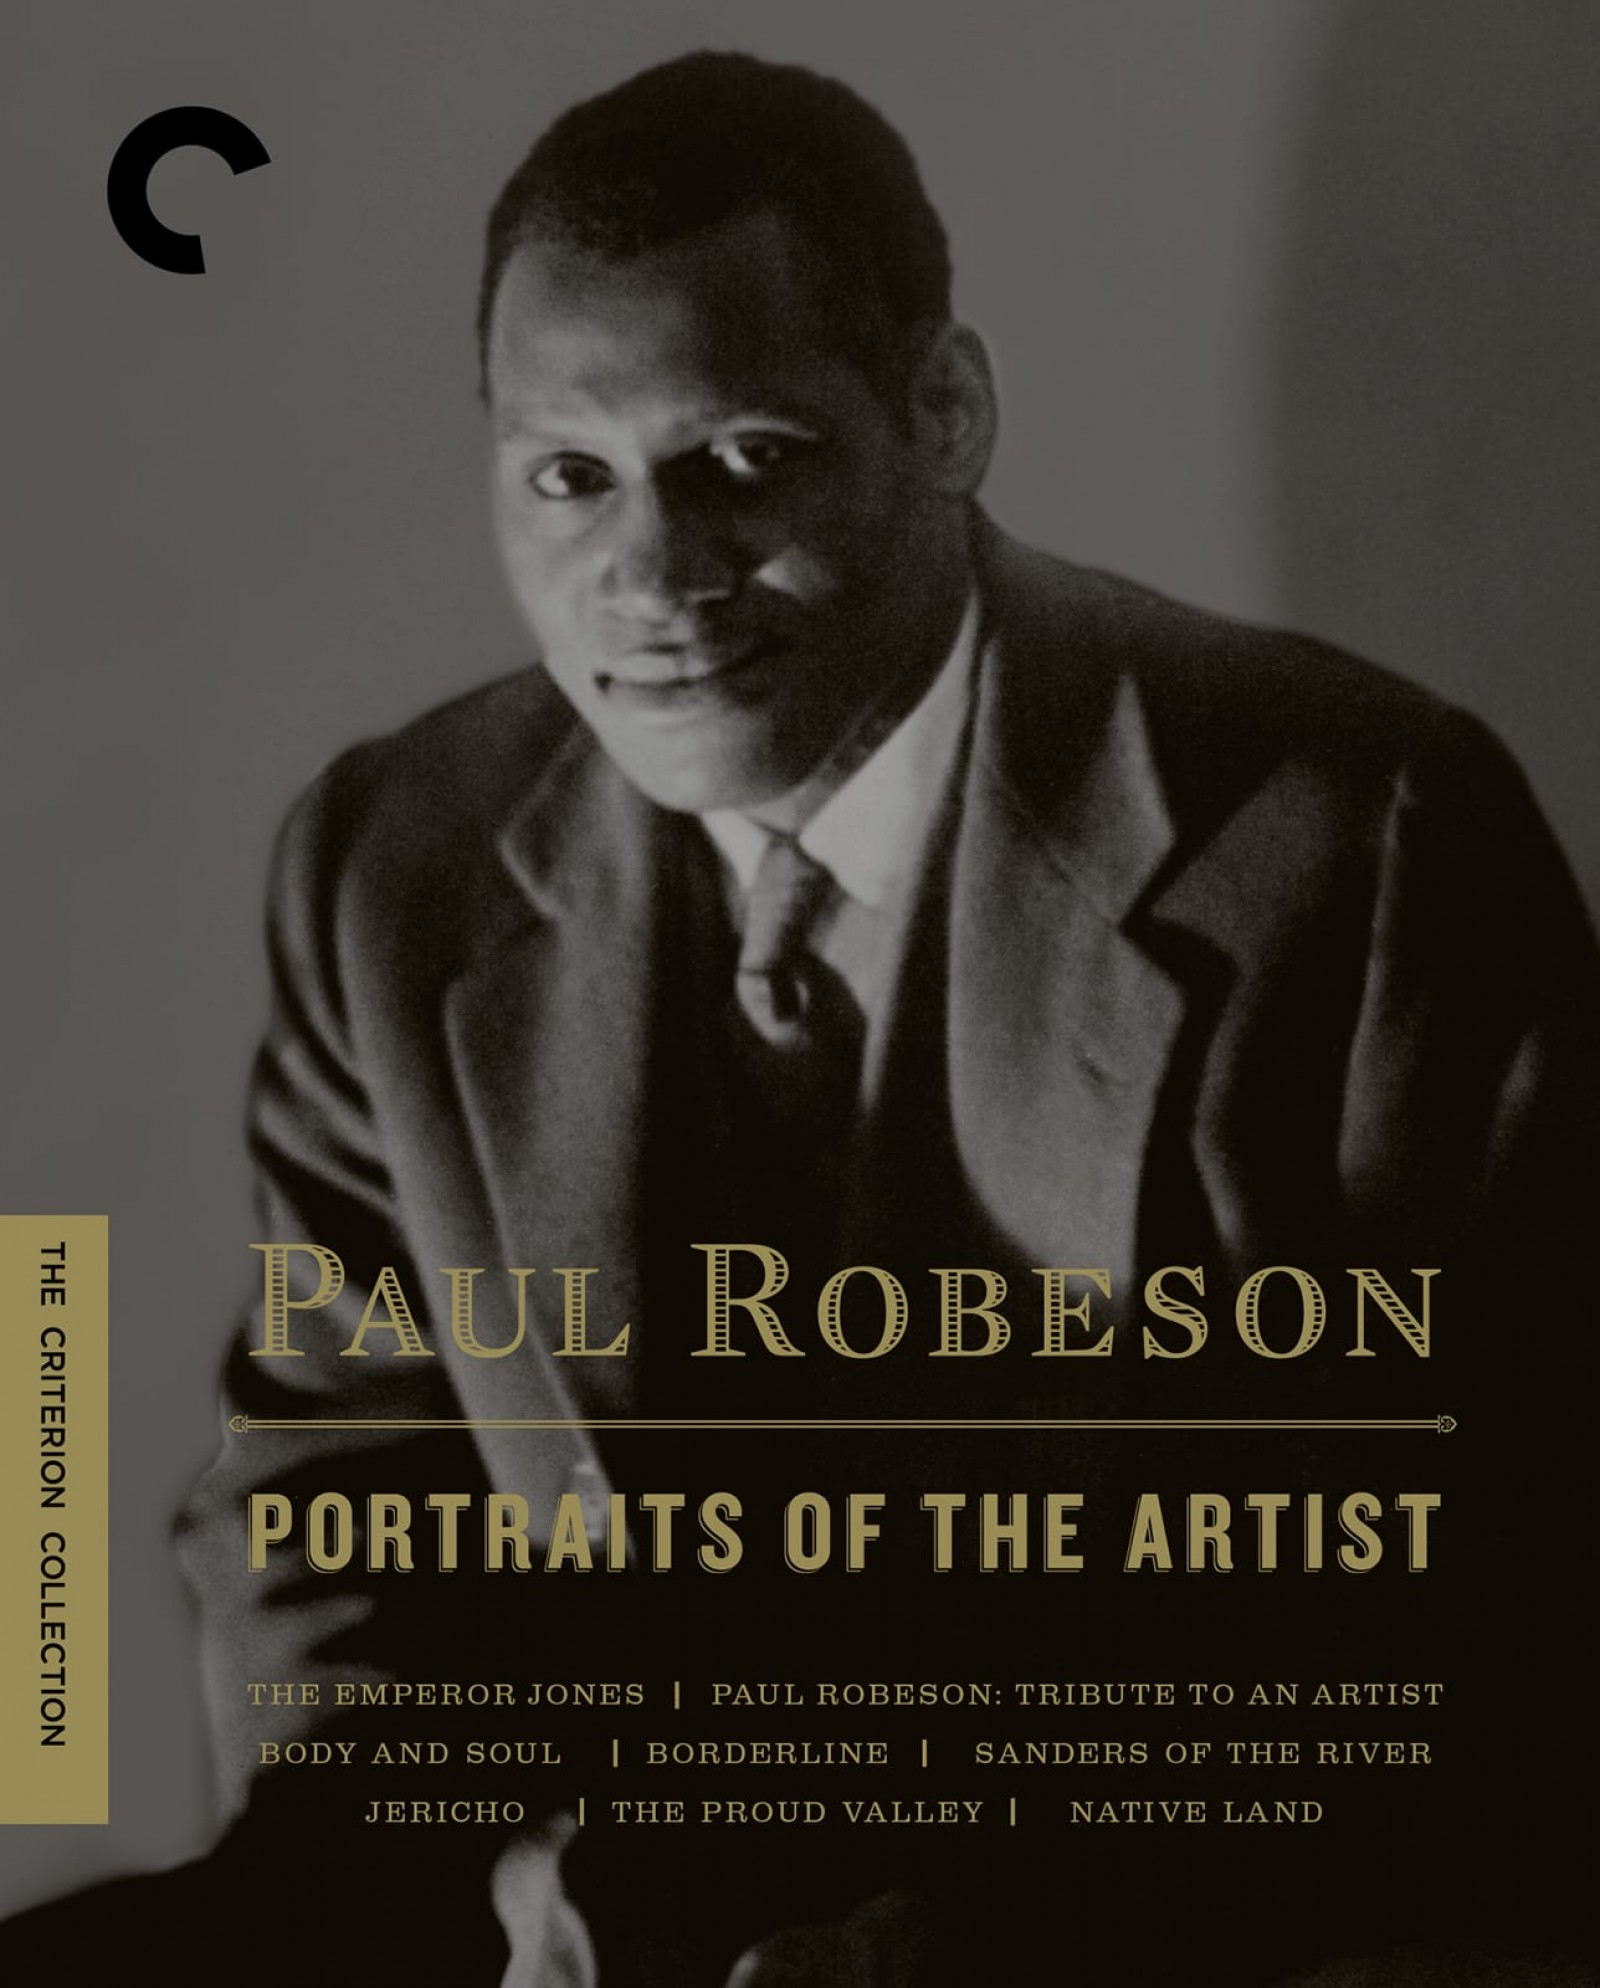 Voices Radio: Eric Mann and Alan Minsky talk about the late great Paul Robeson.